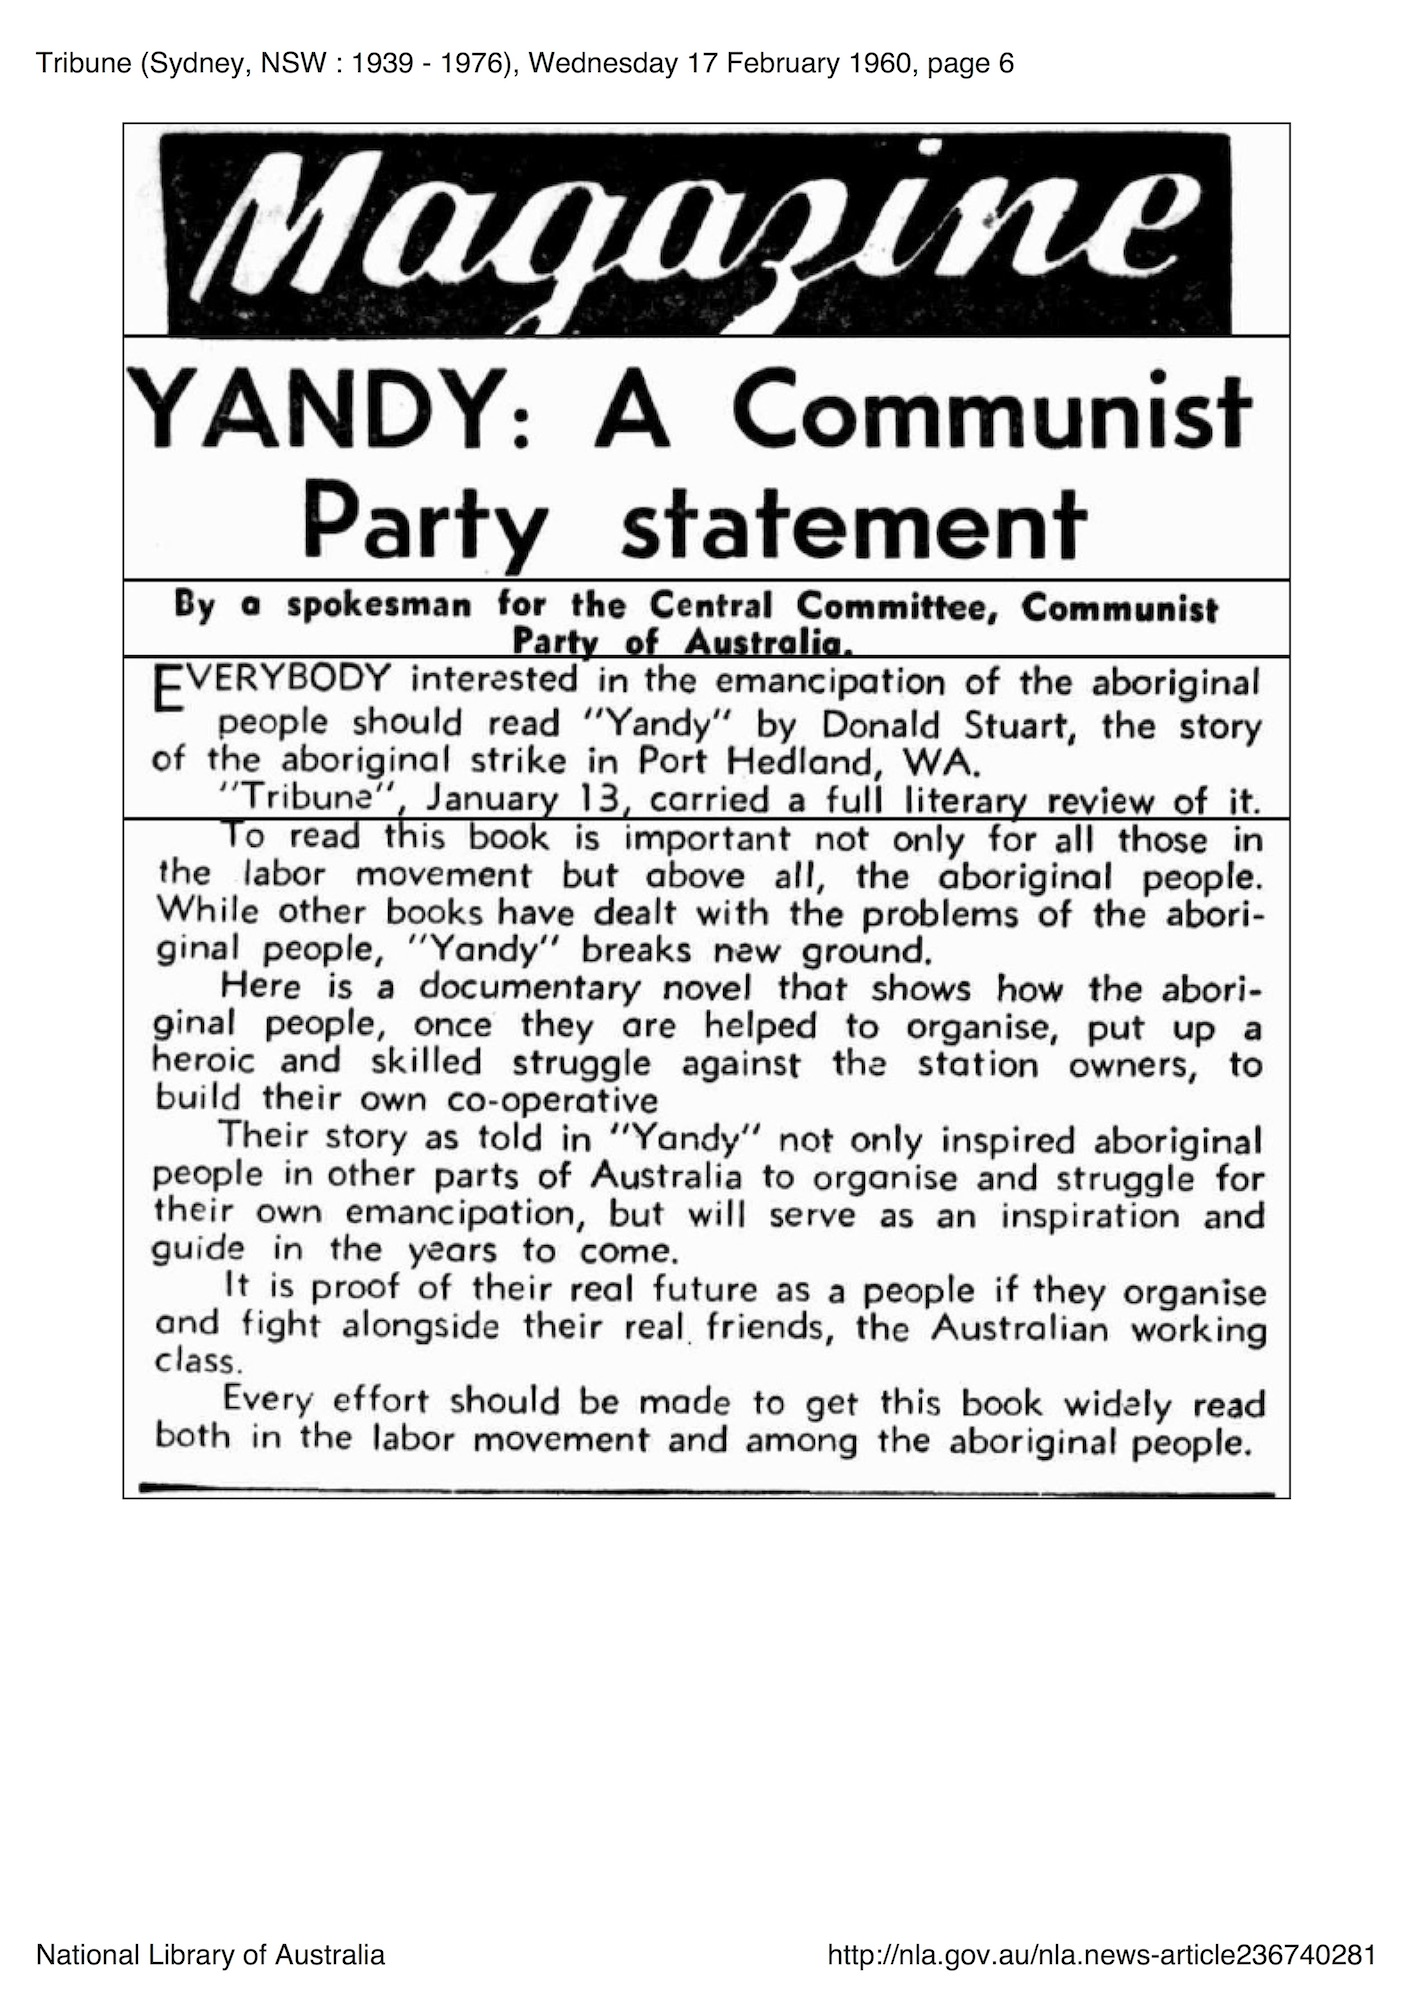 Tribune, 17 February 1960, p. 6, 'Yandy: A Communist Party Statement'